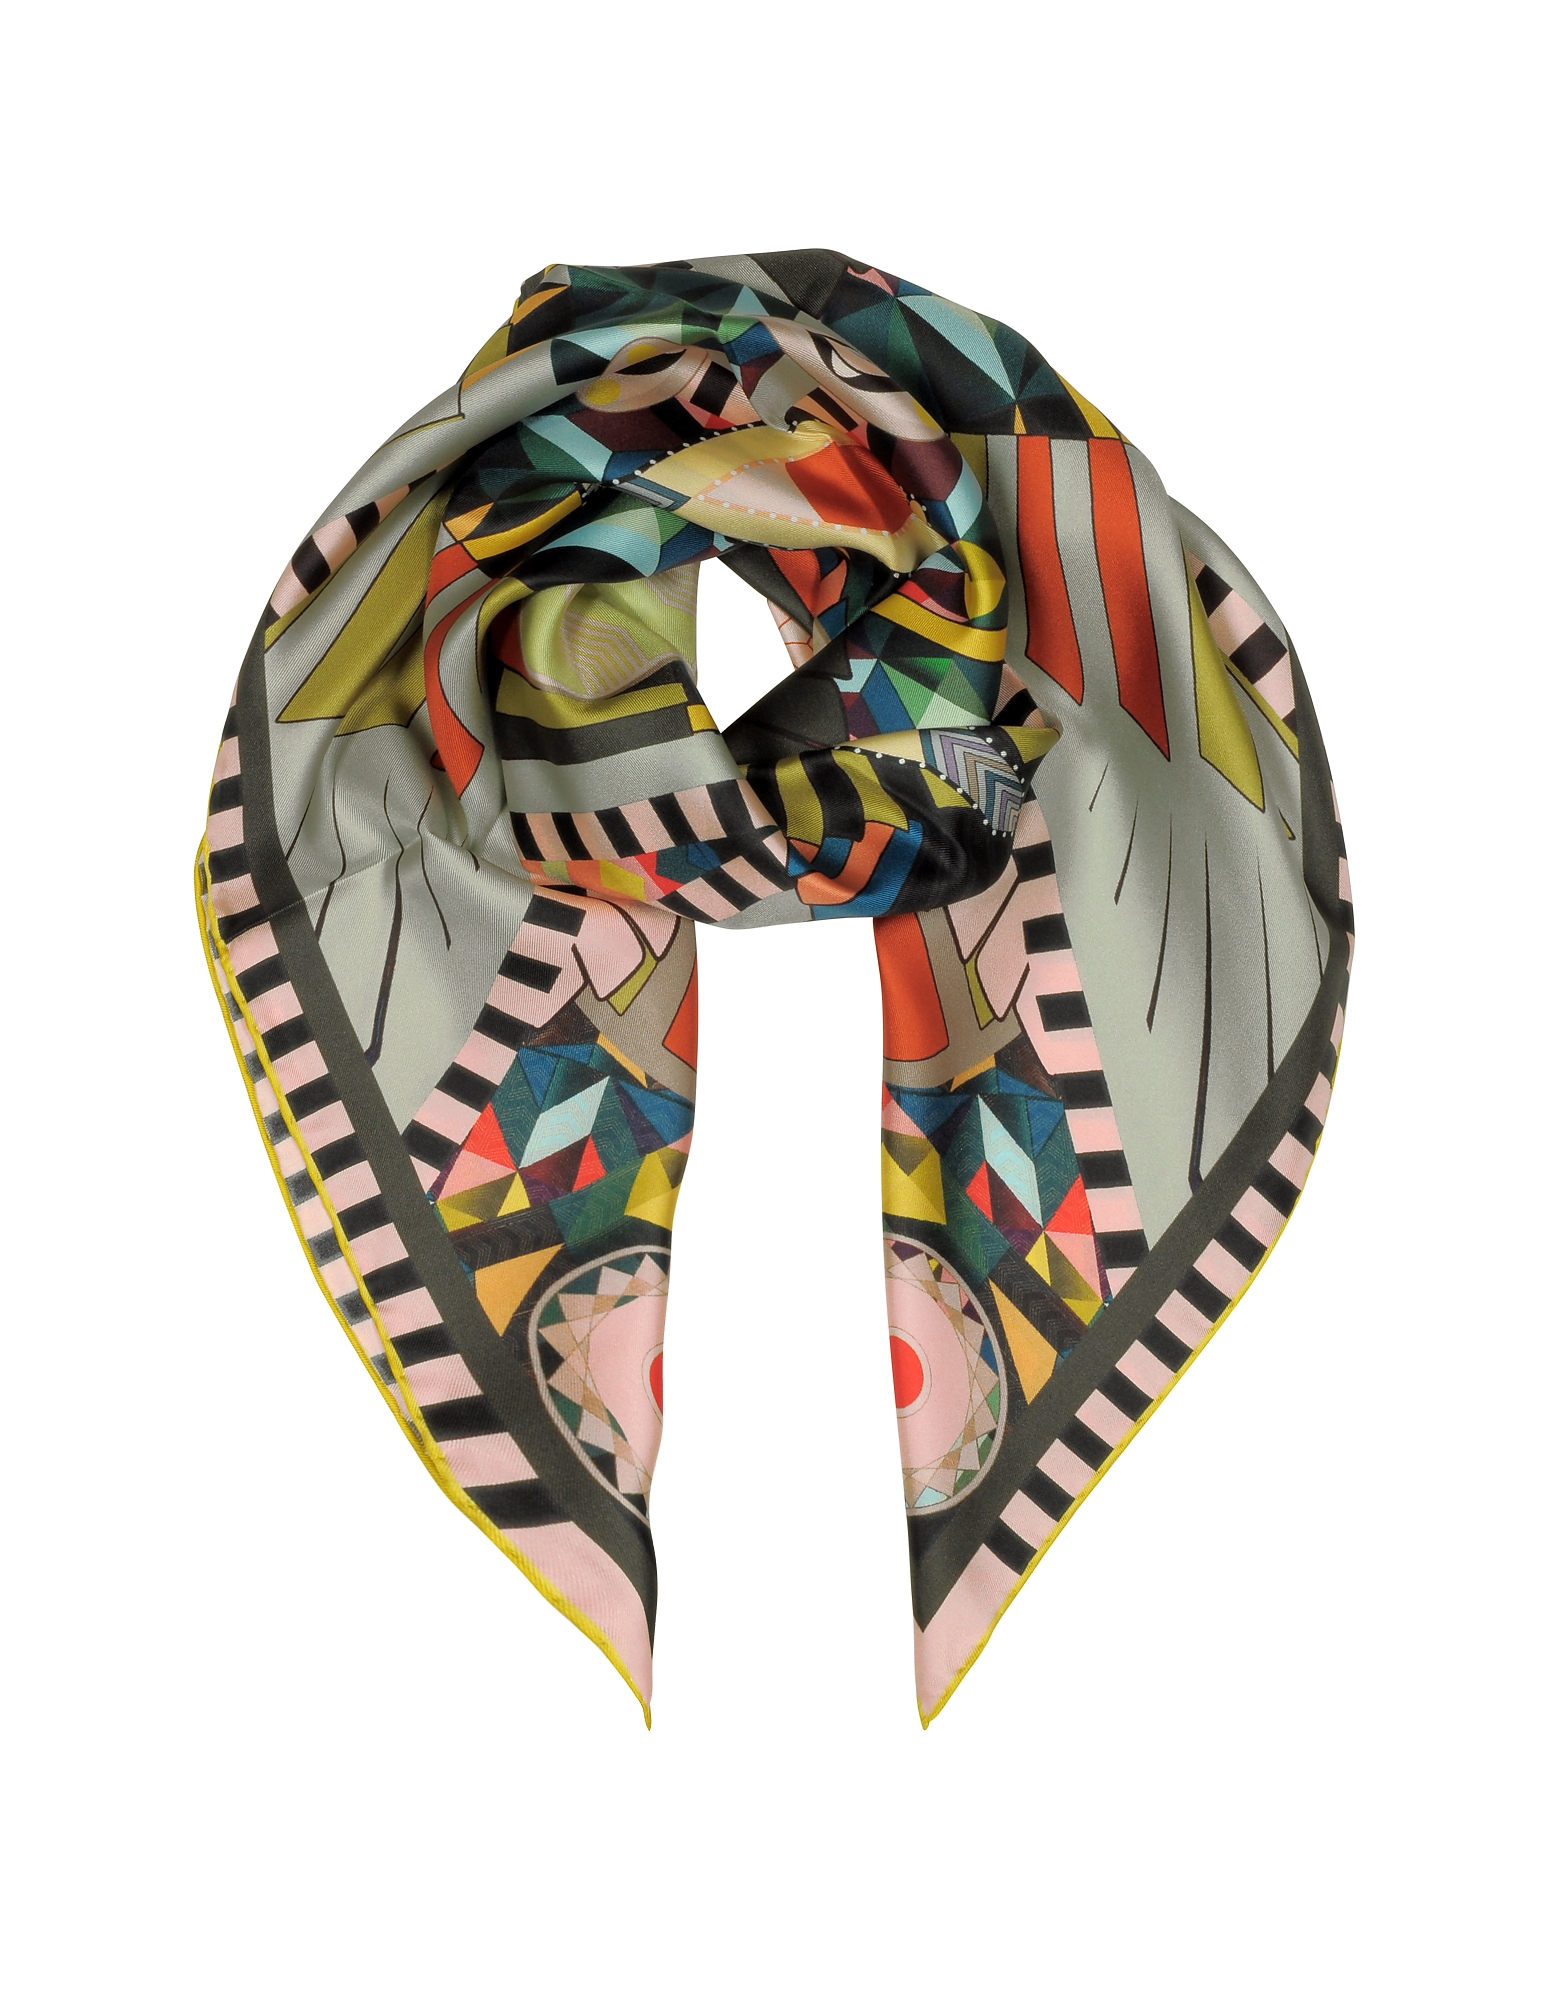 Givenchy Square Scarves, Multicolor Printed Silk Square Scarf